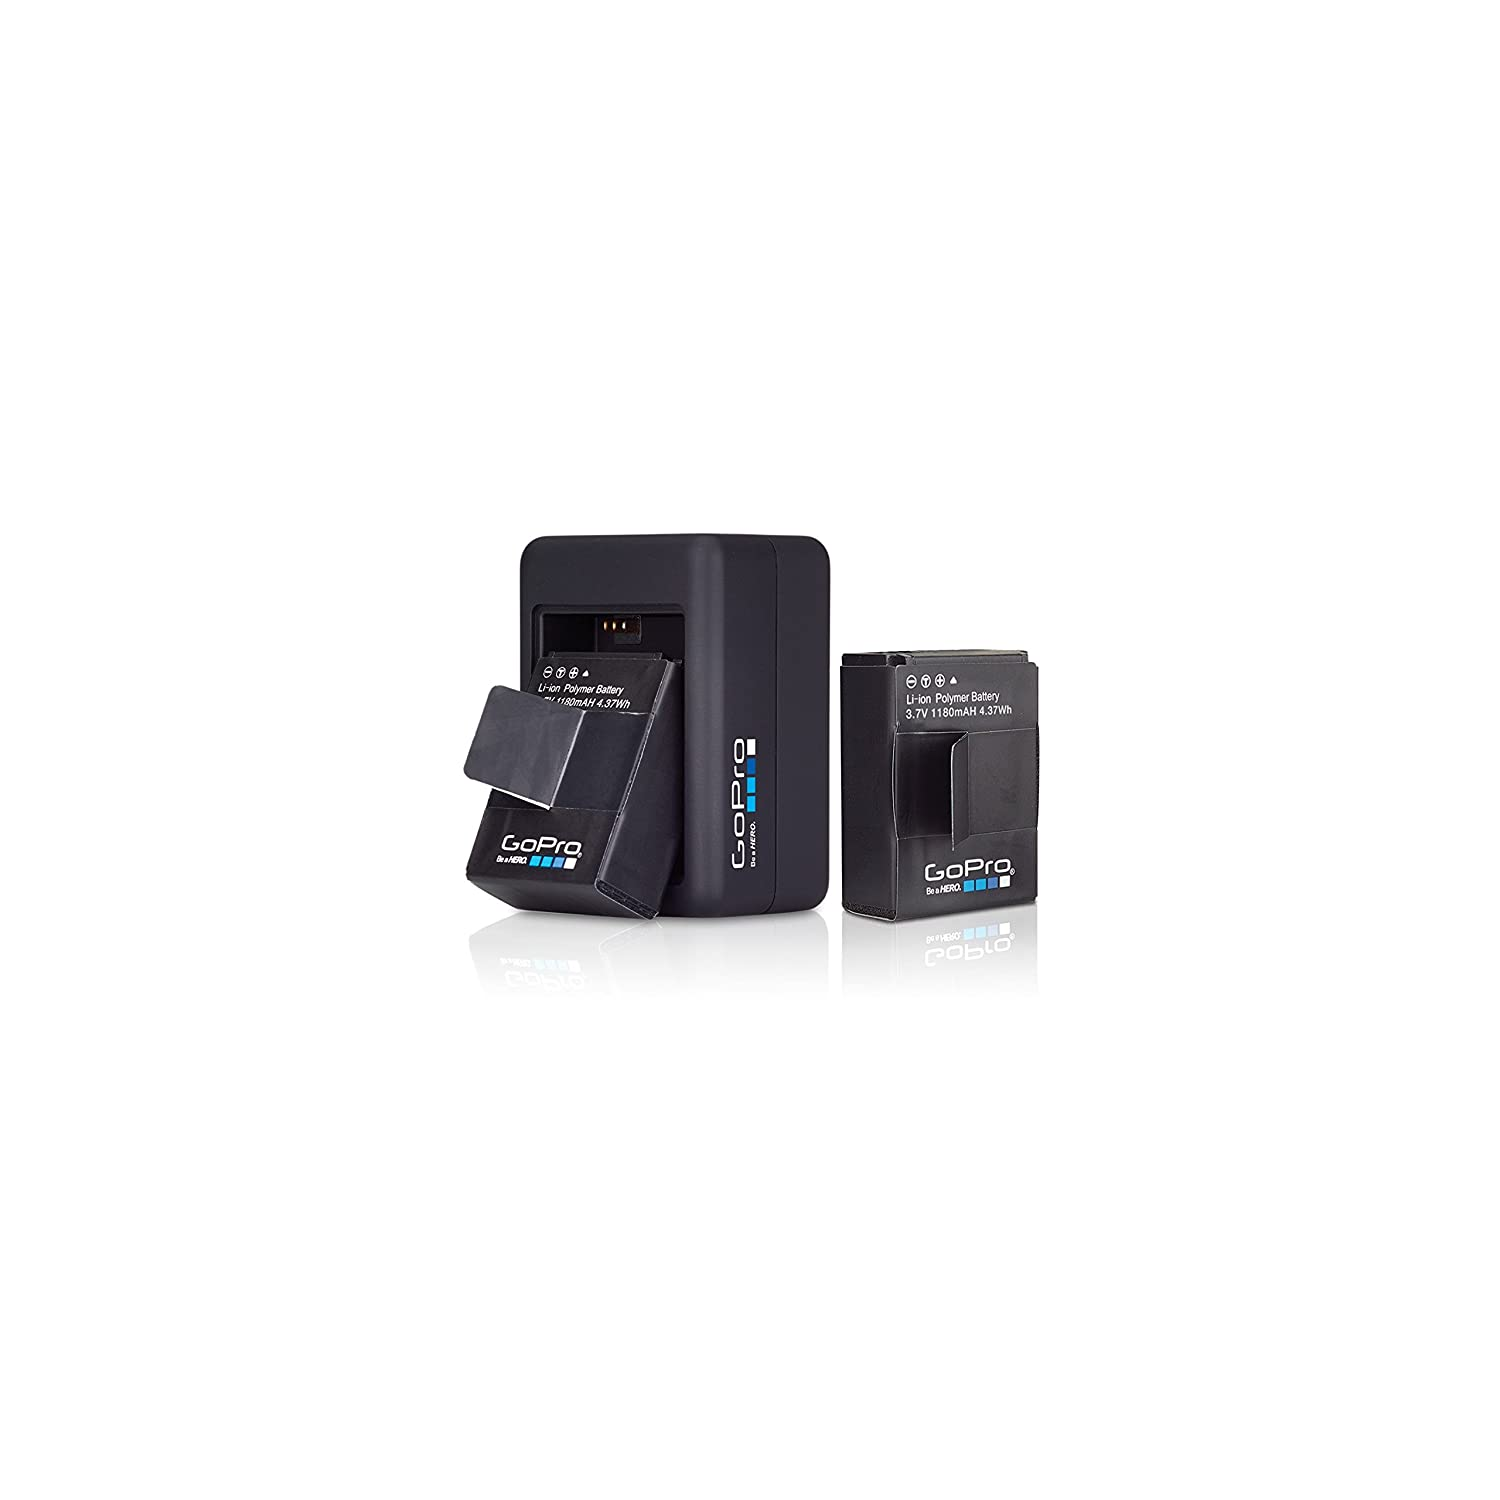 GoPro Dual Battery Charger for HERO3+/HERO3) (GoPro Official Accessory) Go Pro AHBBP-301